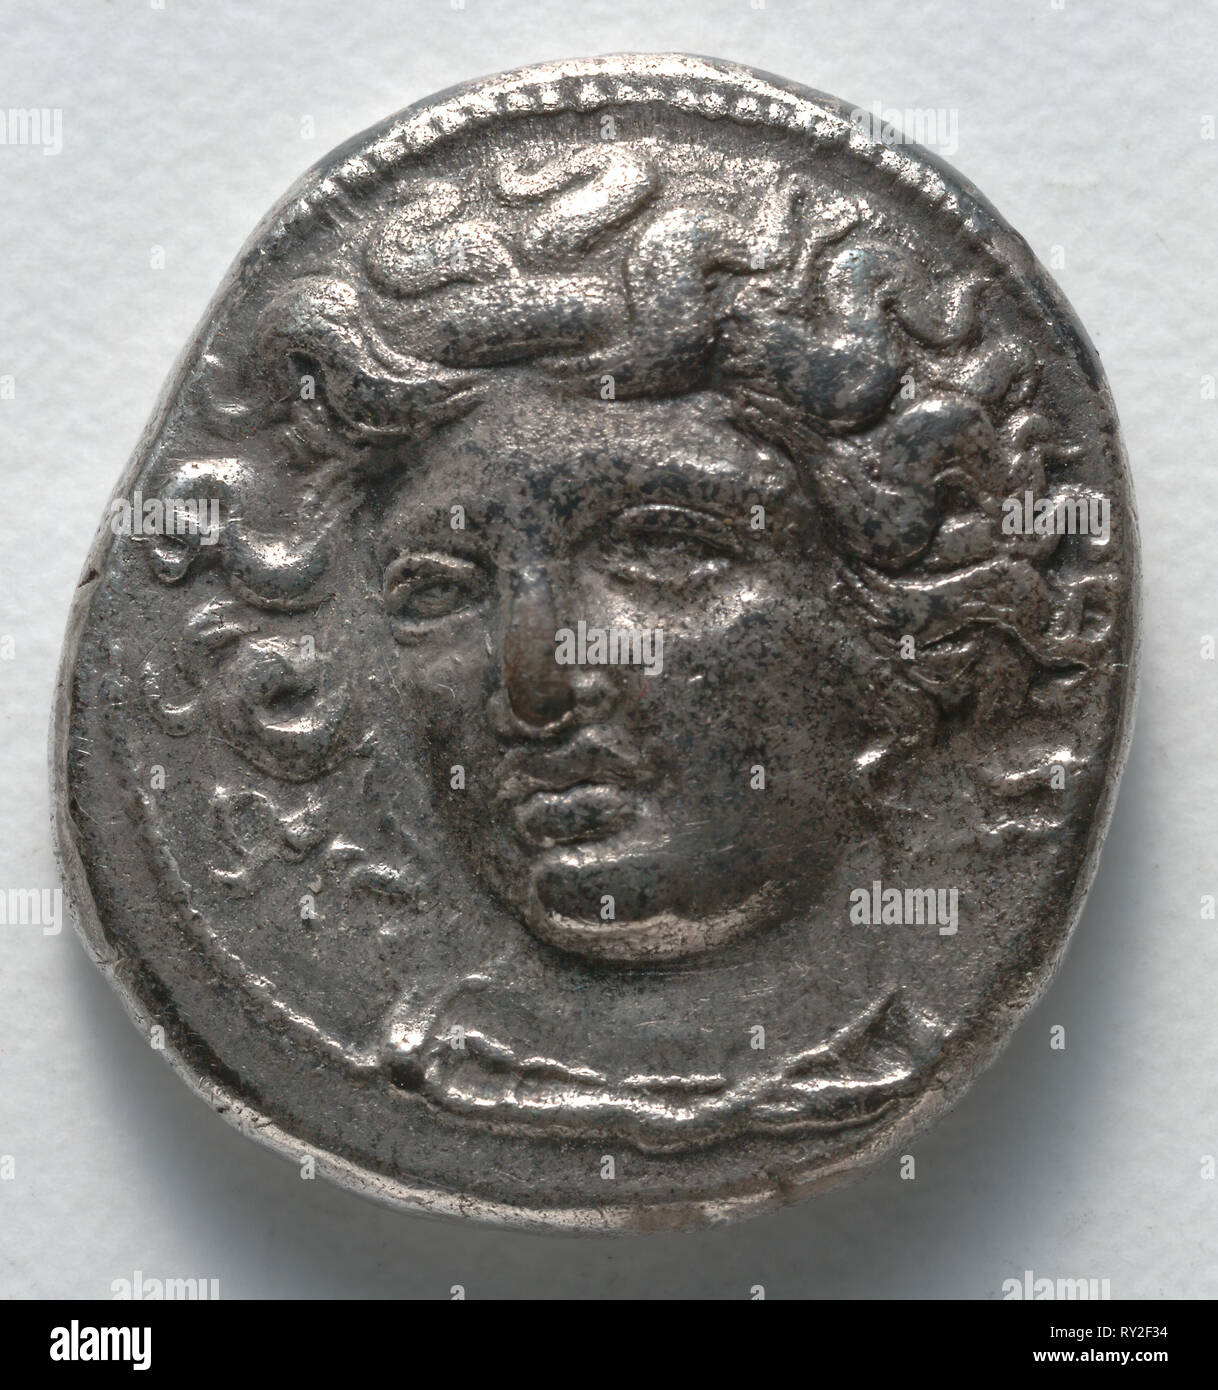 Drachma, 400-344 BC. Greece, Thessaly, 4th century BC. Silver; diameter: 2 cm (13/16 in - Stock Image